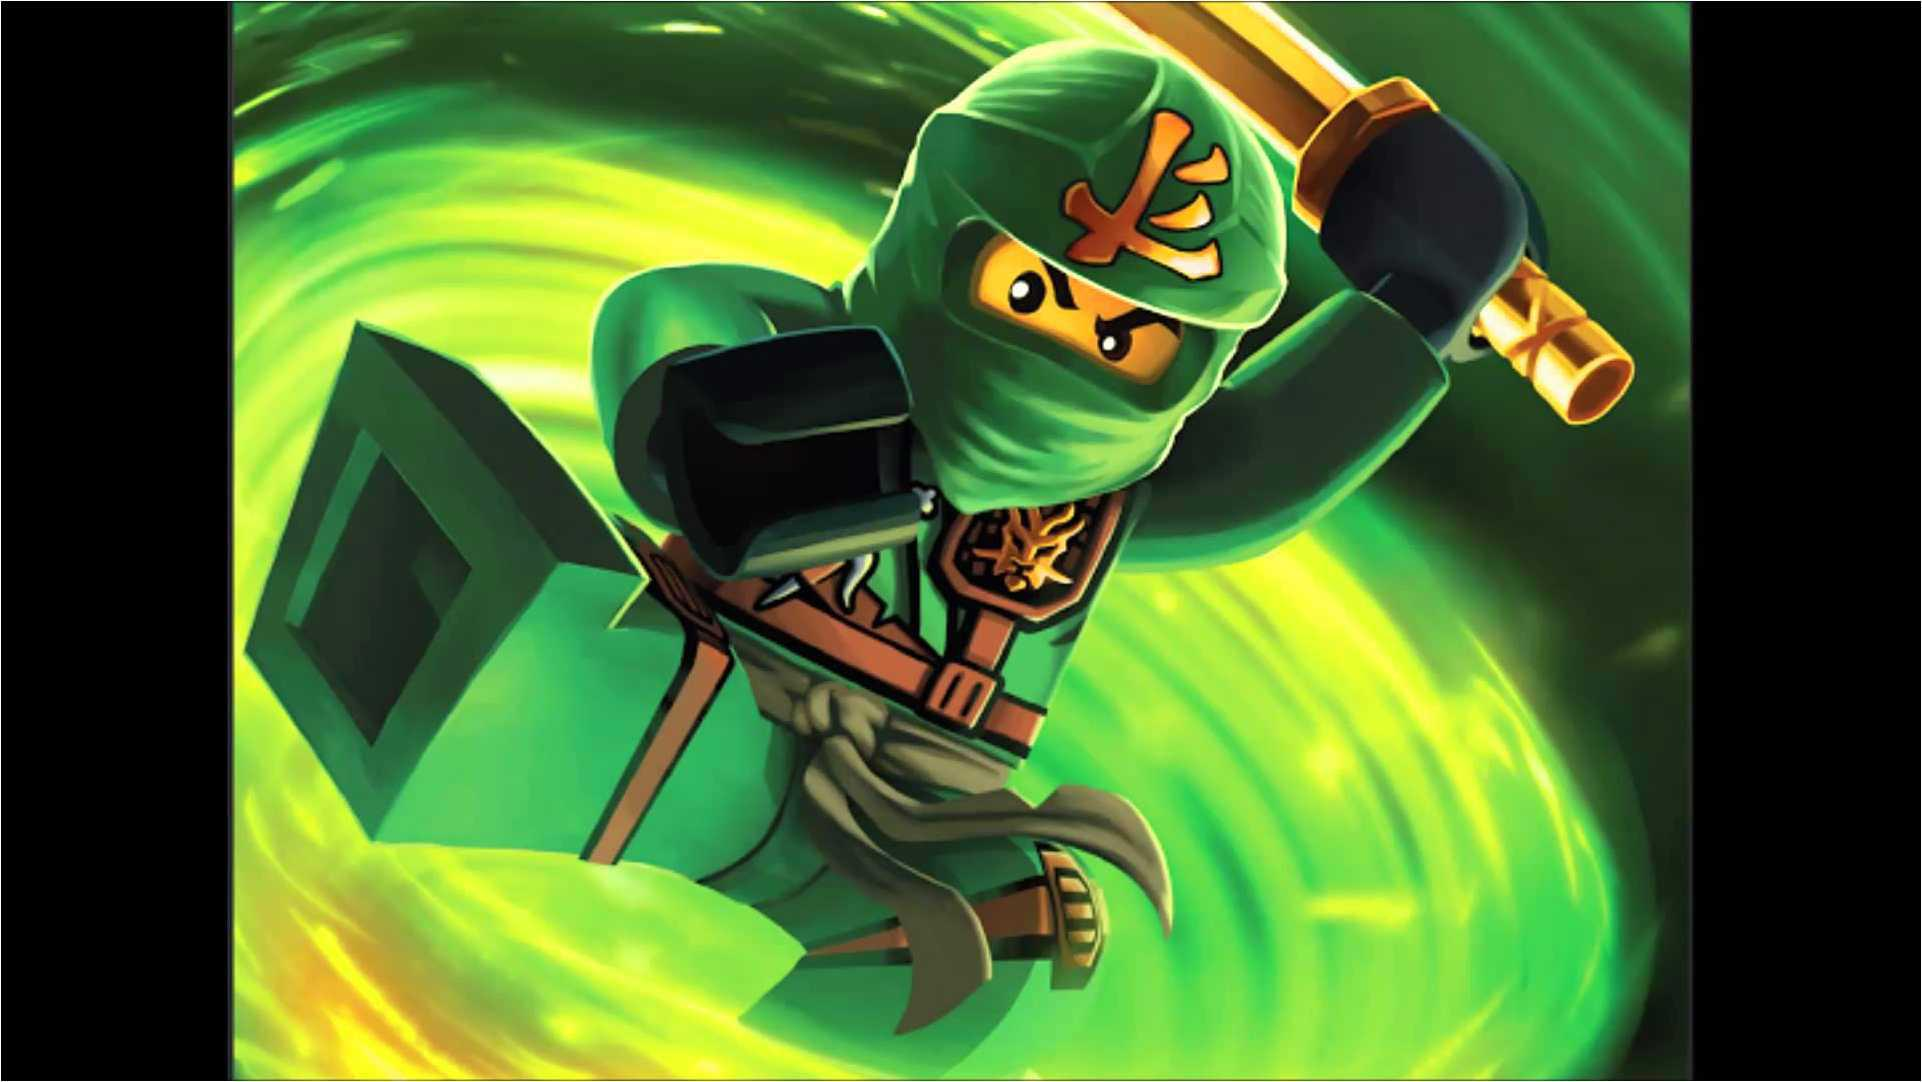 Wallpaper Nya Lloyd The Lego Ninjago Movie Movies